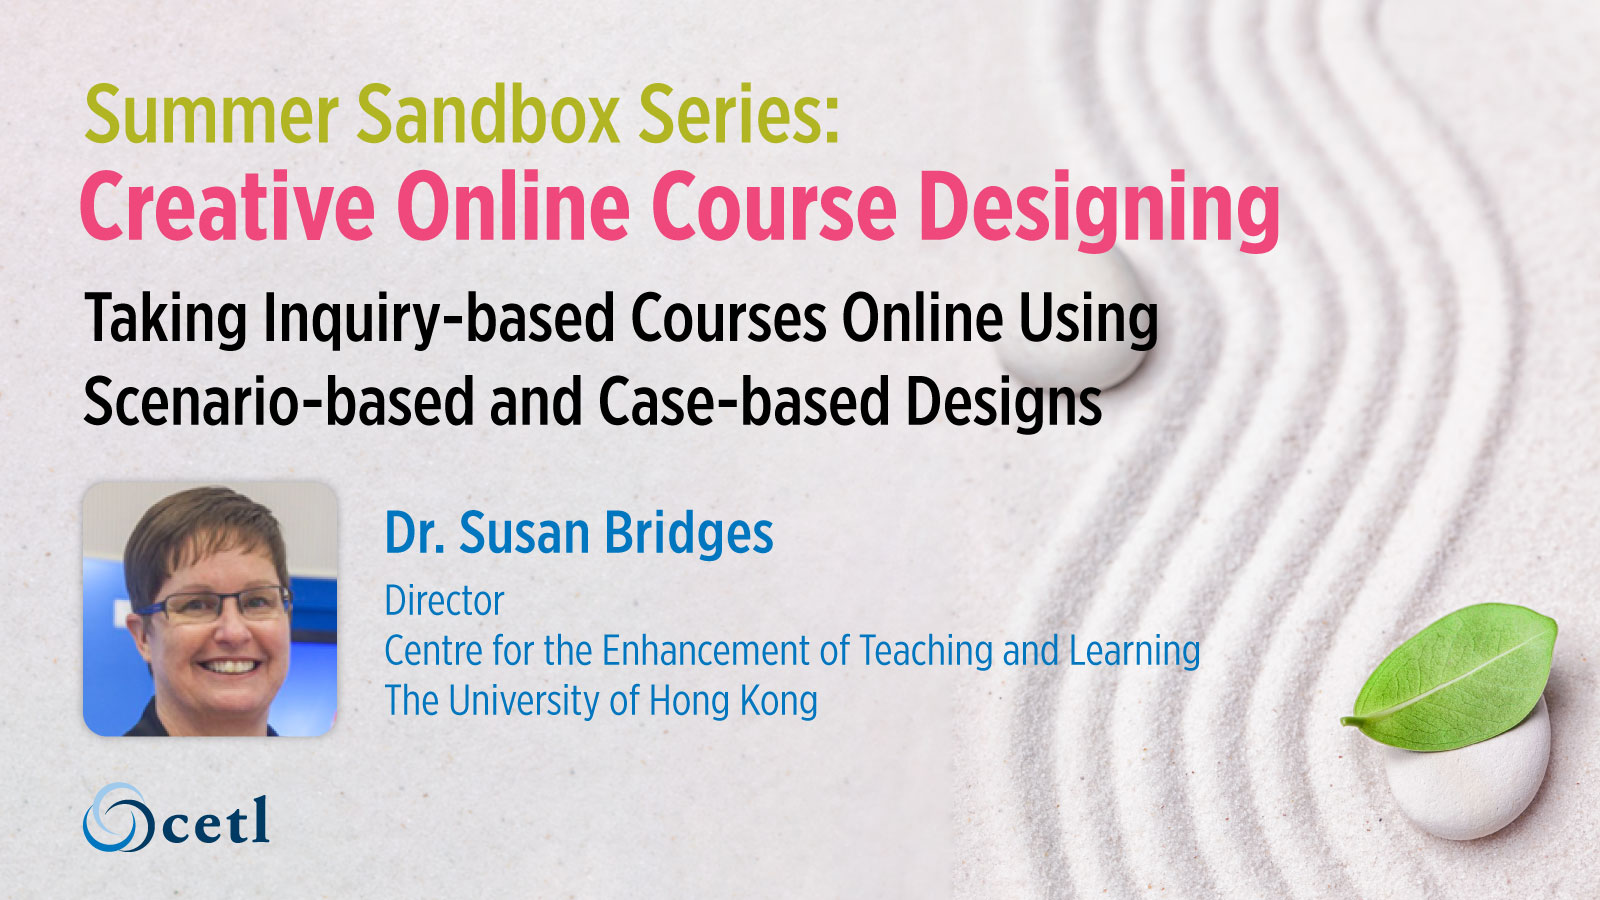 Taking Inquiry-based Courses Online Using Scenario-based and Case-based Designs